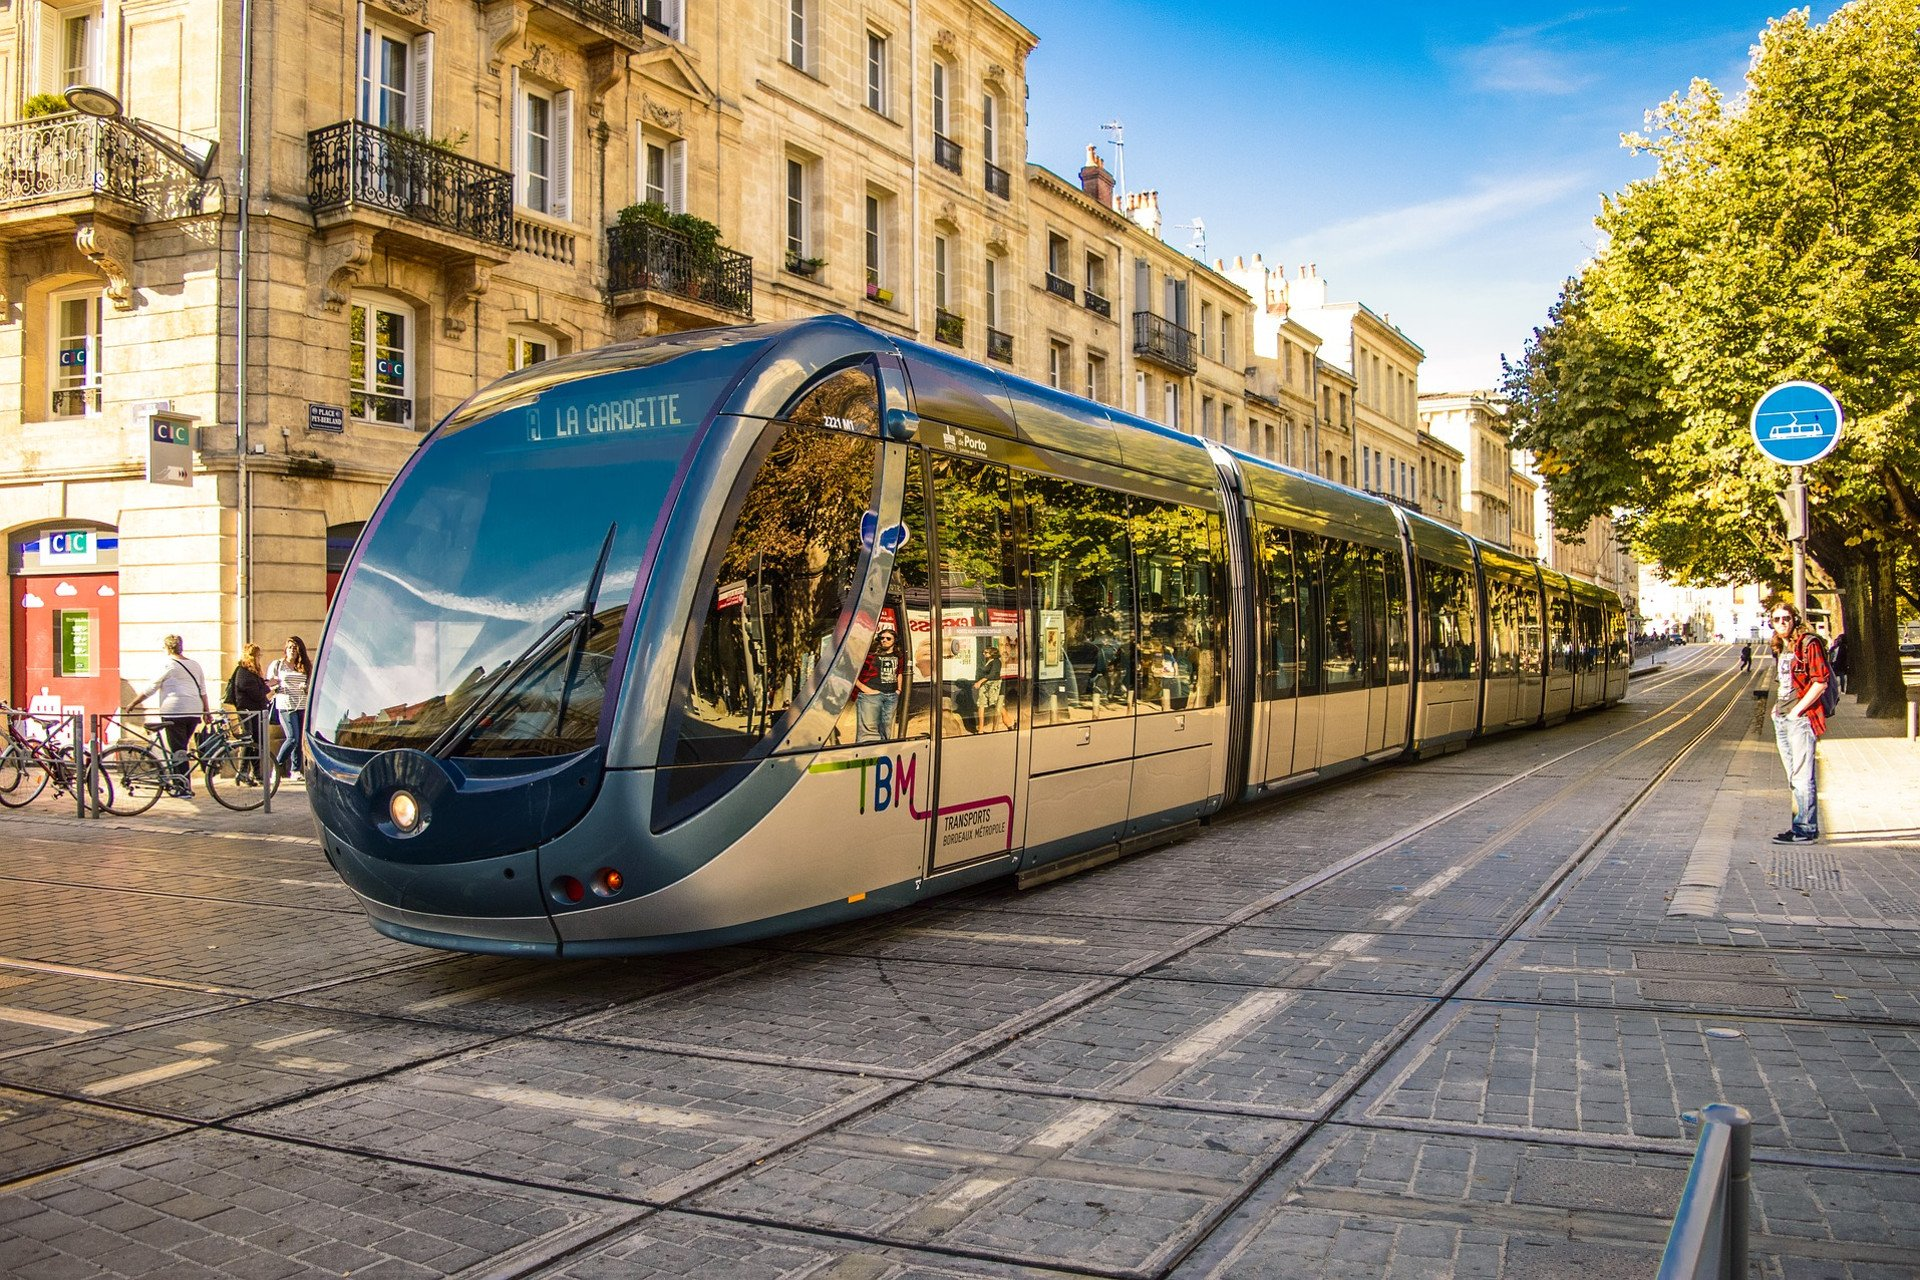 Tram in Bordeaux city center